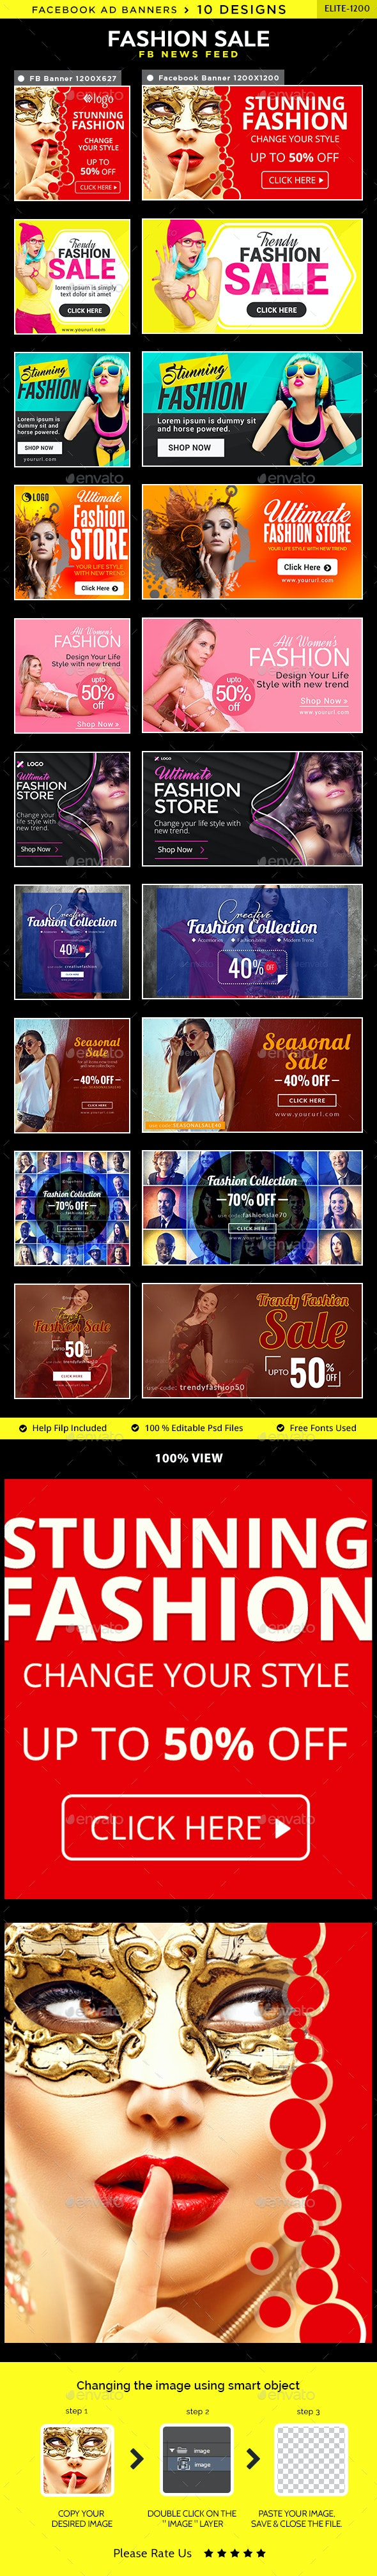 Fashion Sale Facebook News Feed Banners - 10 Designs - 2 Sizes Each - Social Media Web Elements